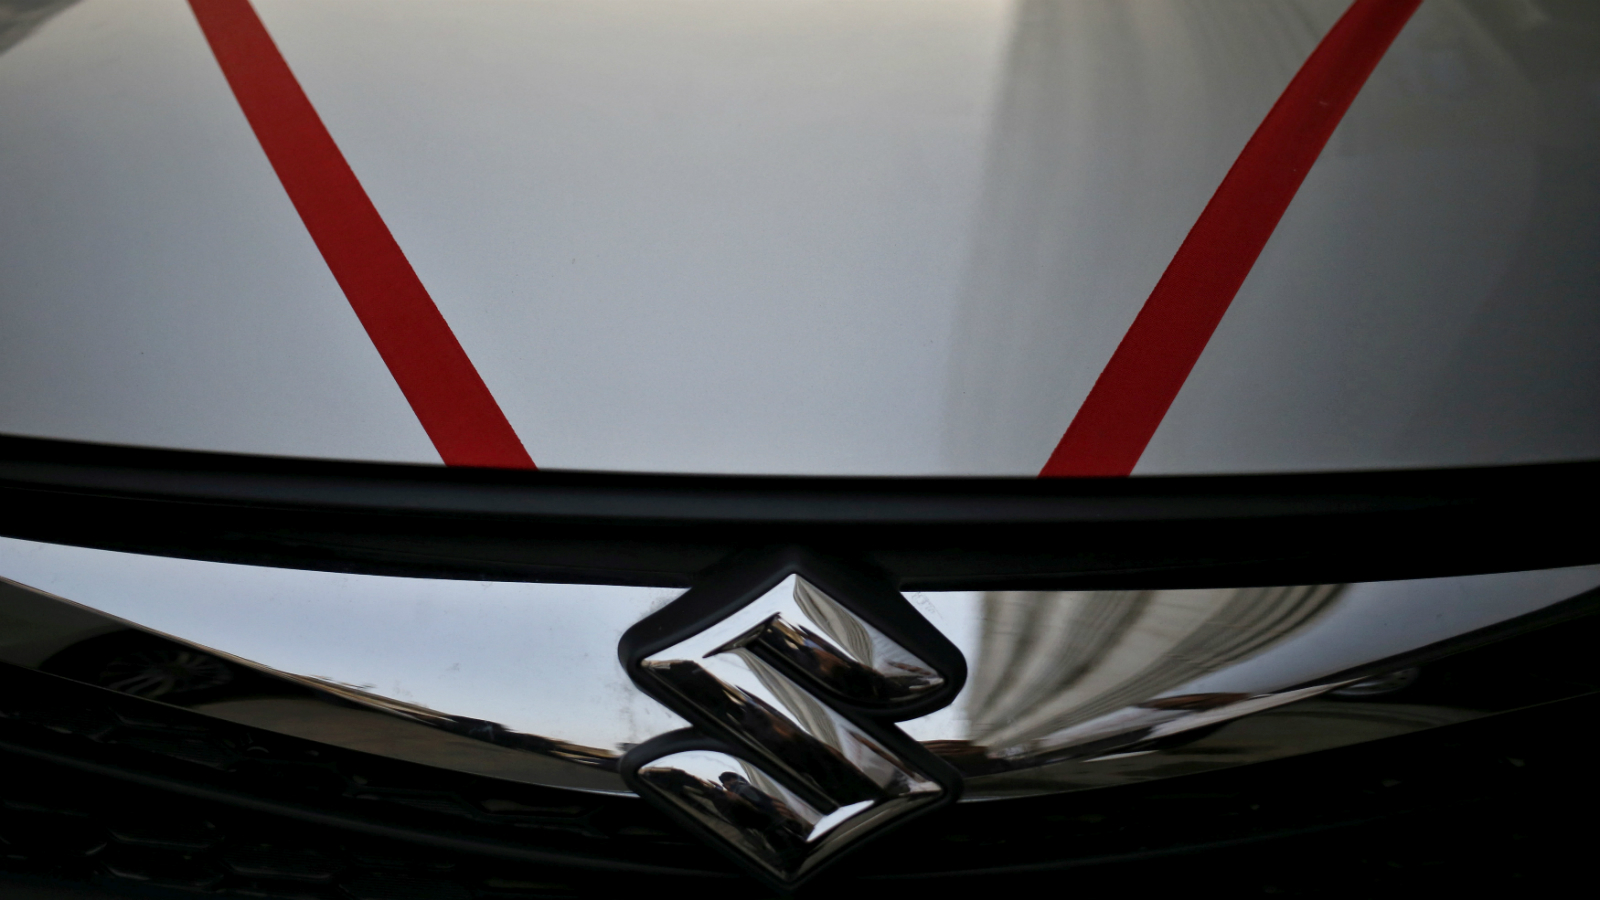 The logo of Maruti Suzuki India Limited is seen on car parked outside a showroom in New Delhi, India, February 29, 2016